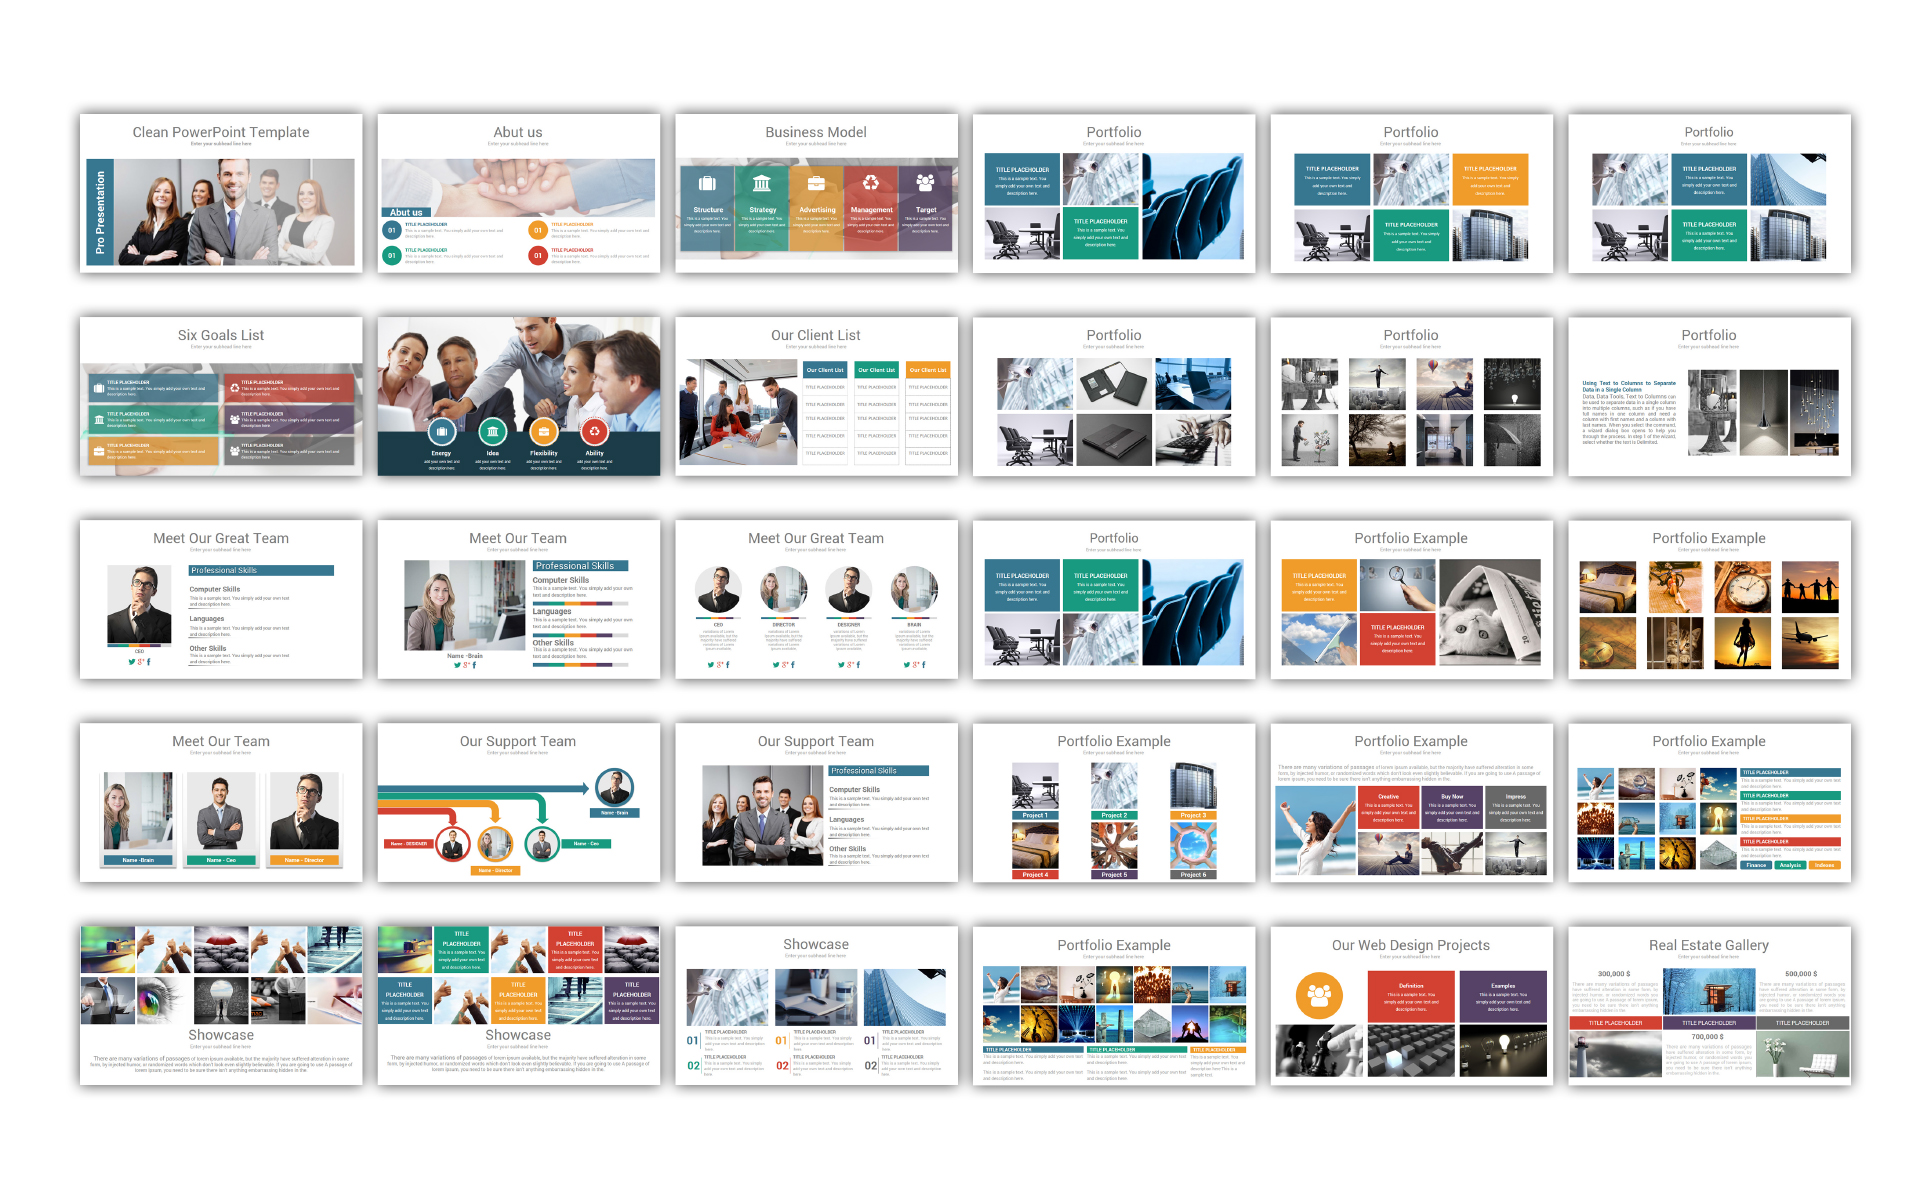 Clean - PowerPoint Template